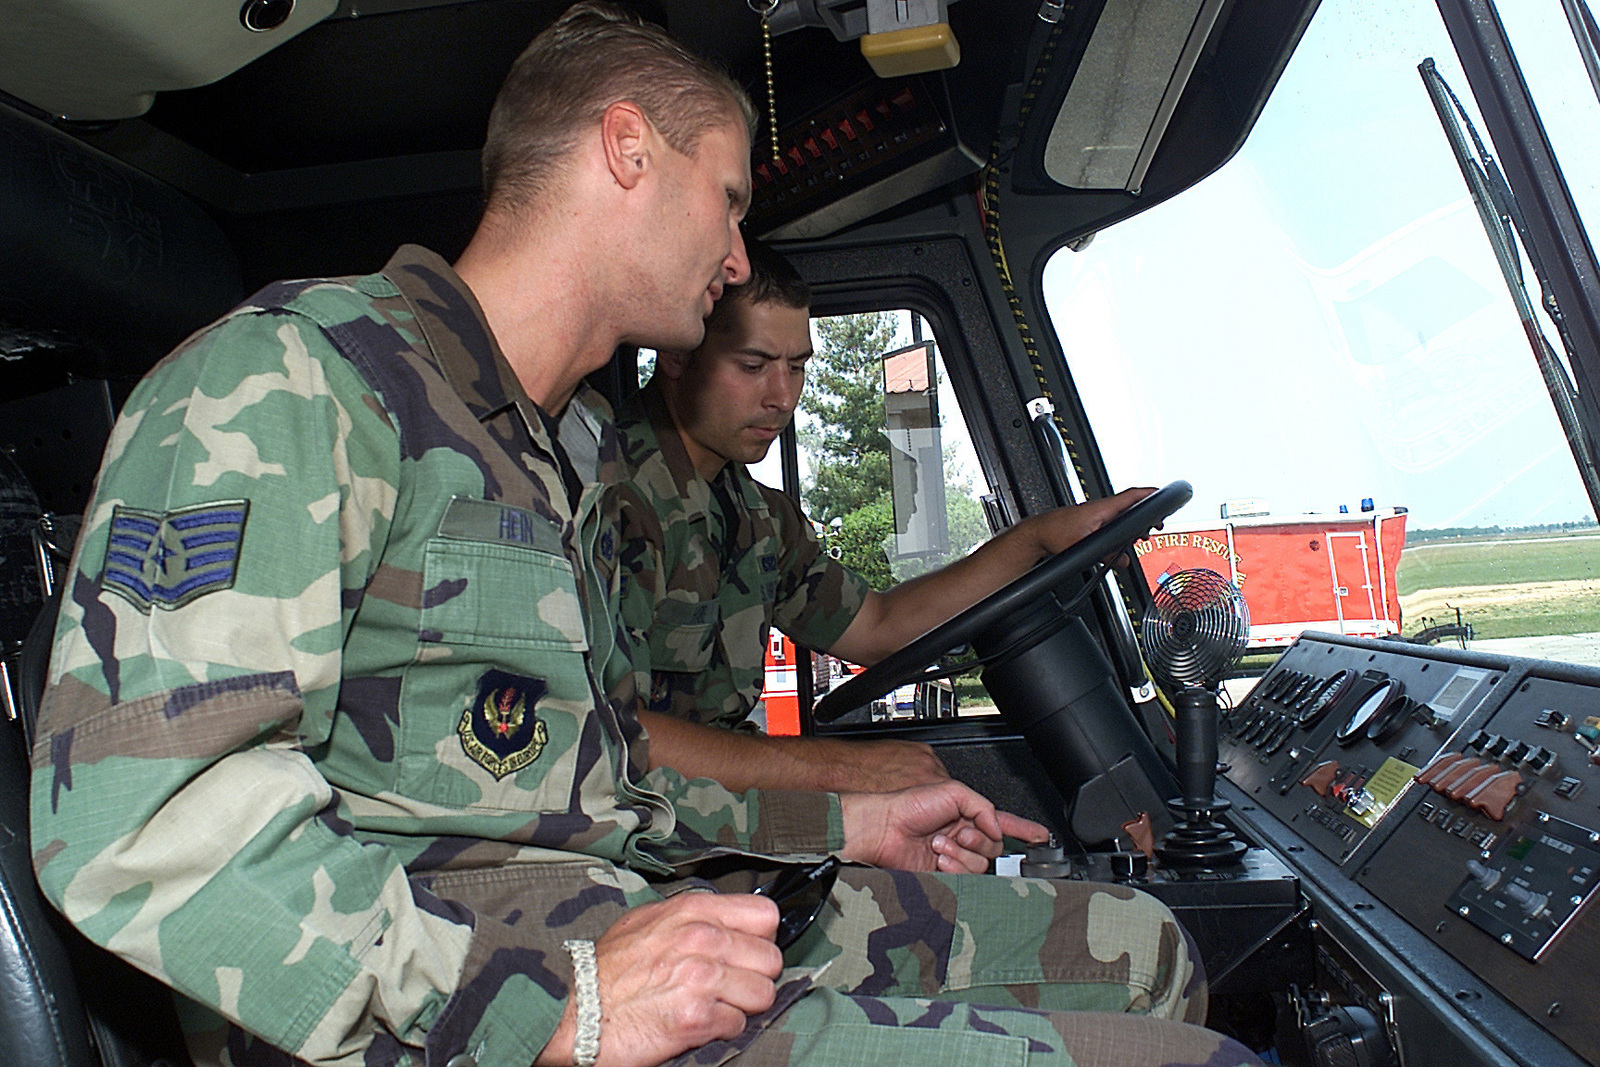 STAFF Sergeant (SSGT), Paul Hine, USAF, Fire Protection SPECIALIST, 31ST Civil Engineer Squadron (CES), Fire Protection Flight, Aviano AB, Italy, instructs AIRMAN First Class (A1C), Matthew Haire, on the operation of the bumper and roof water turret, on the P-23 Airport and Rescue Fire Fighting Vehicle, during a training course at Aviano AB, Italy